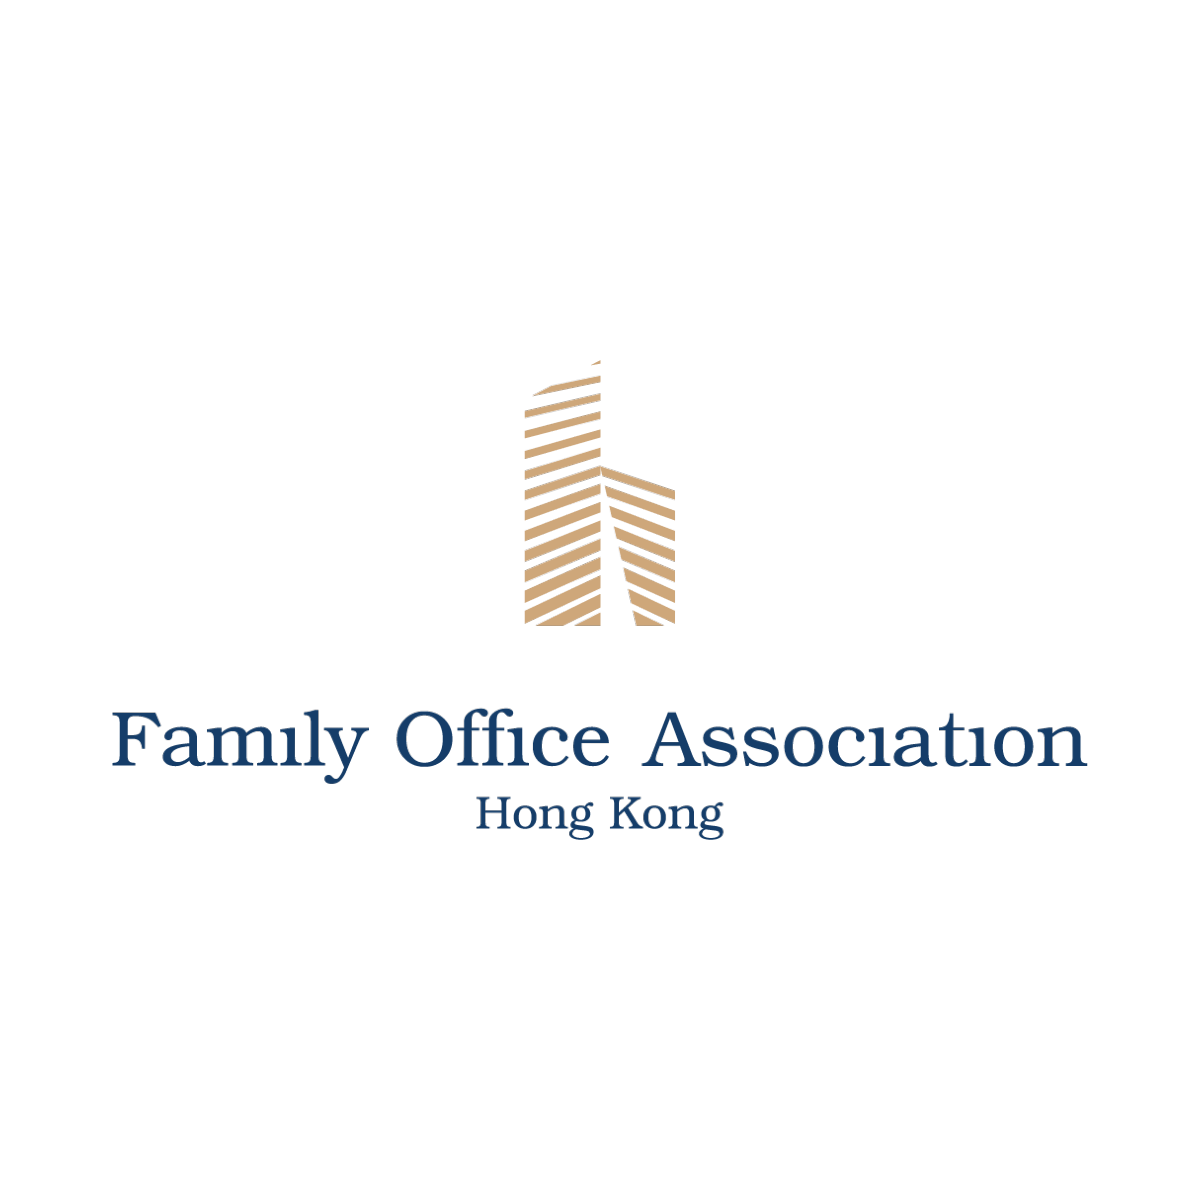 Family Office Association Hong Kong Achieves Key Membership Milestone with Combined AUM of Over US$50 Billion